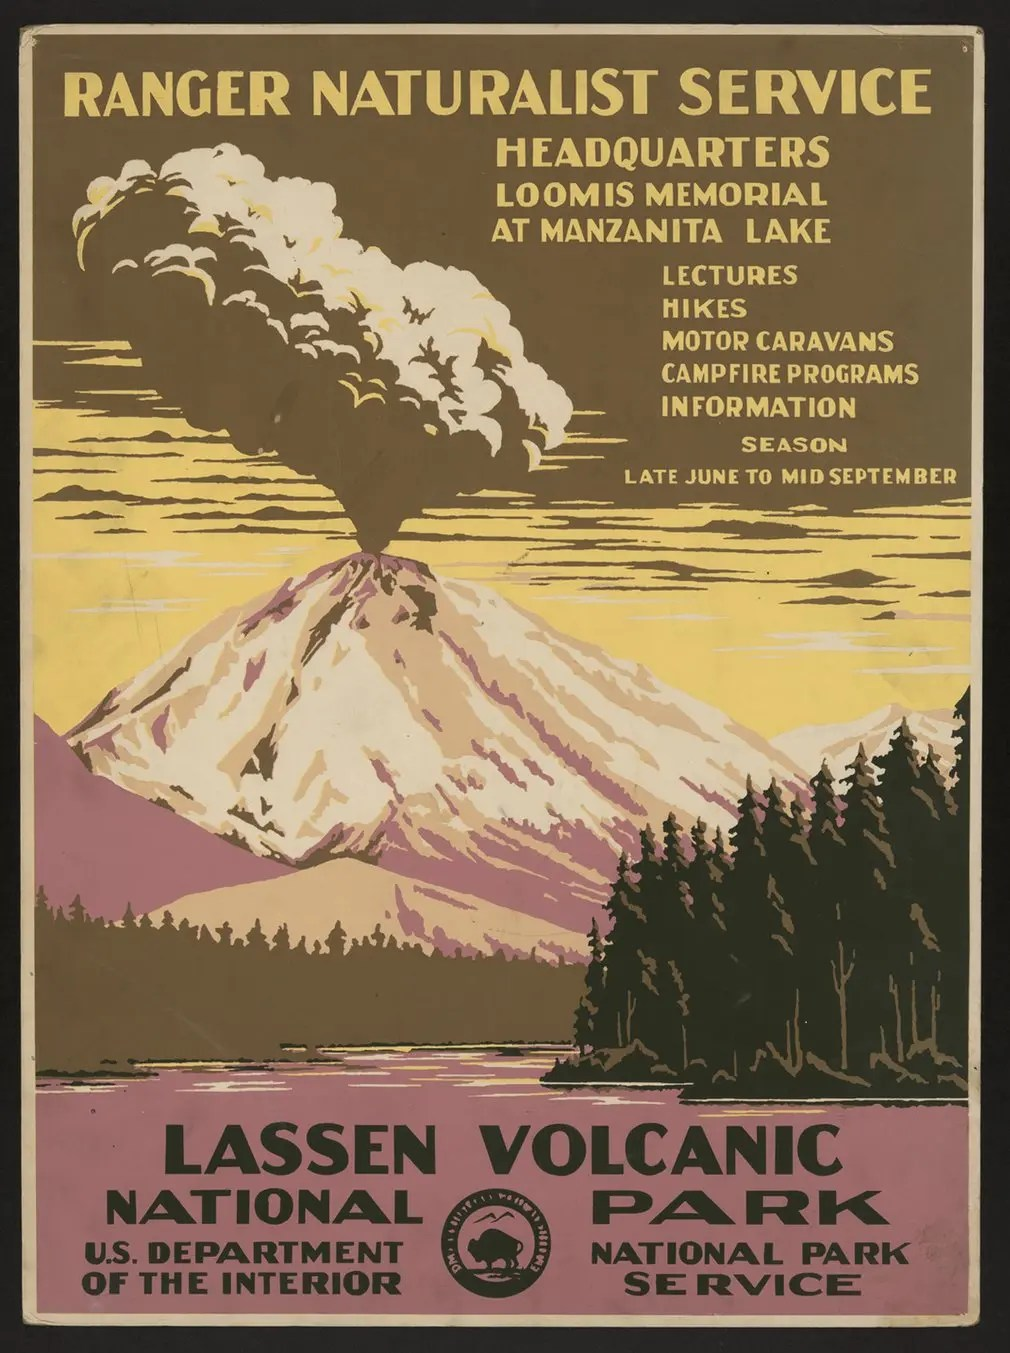 Lassen Volcanic national park and the Lassen erupting, 1938.